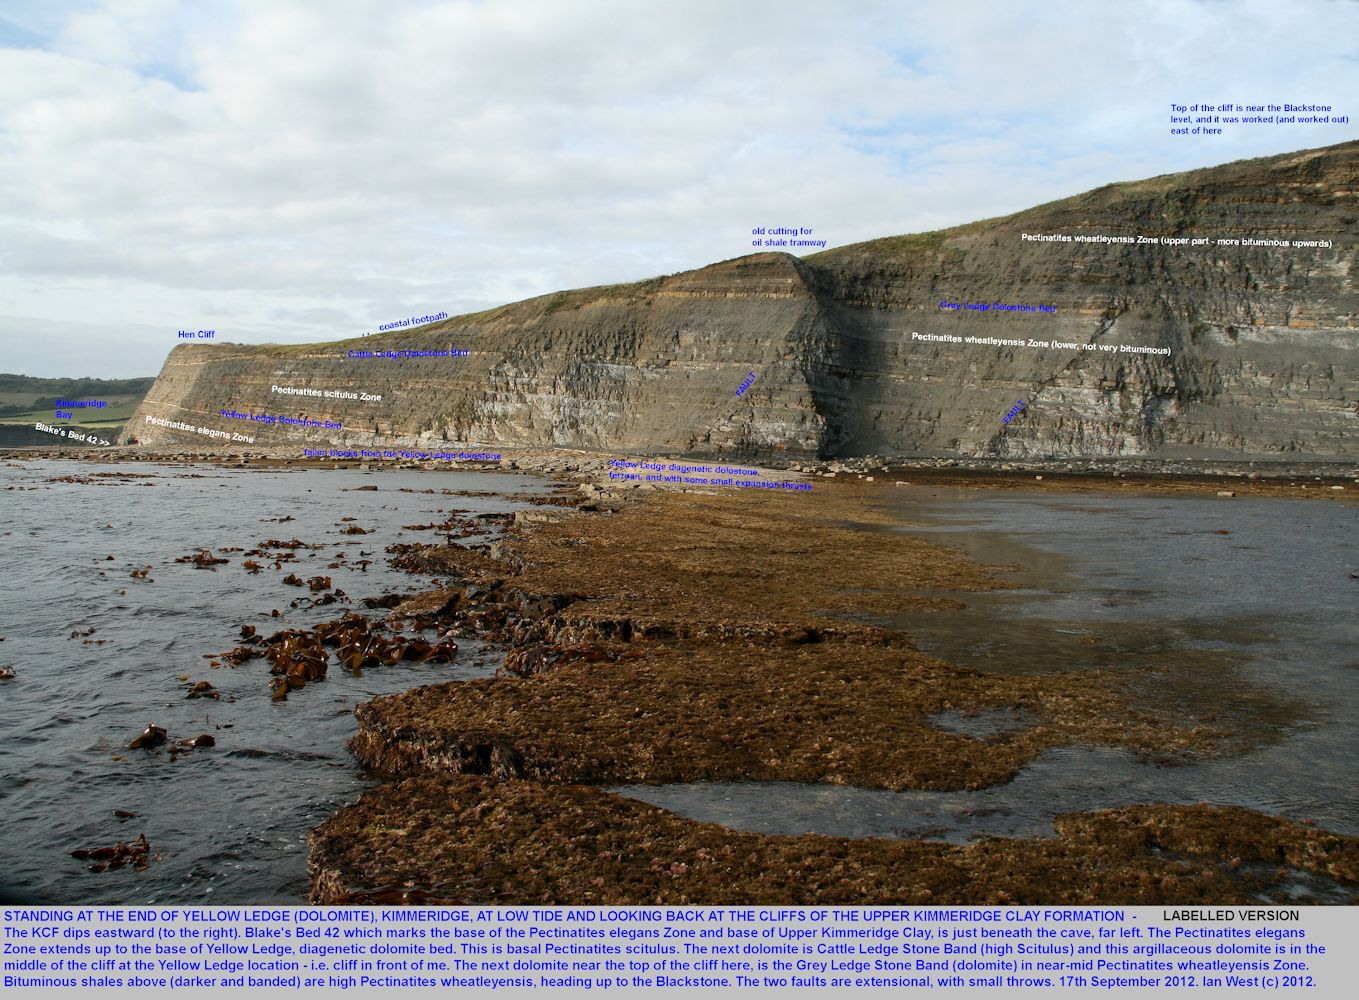 Upper Kimmeridge Clay cliffs seen from the seaward end of Yellow Ledge at low tide, east of  Kimmeridge Bay, Dorset, 17th September 2012 - labelled version